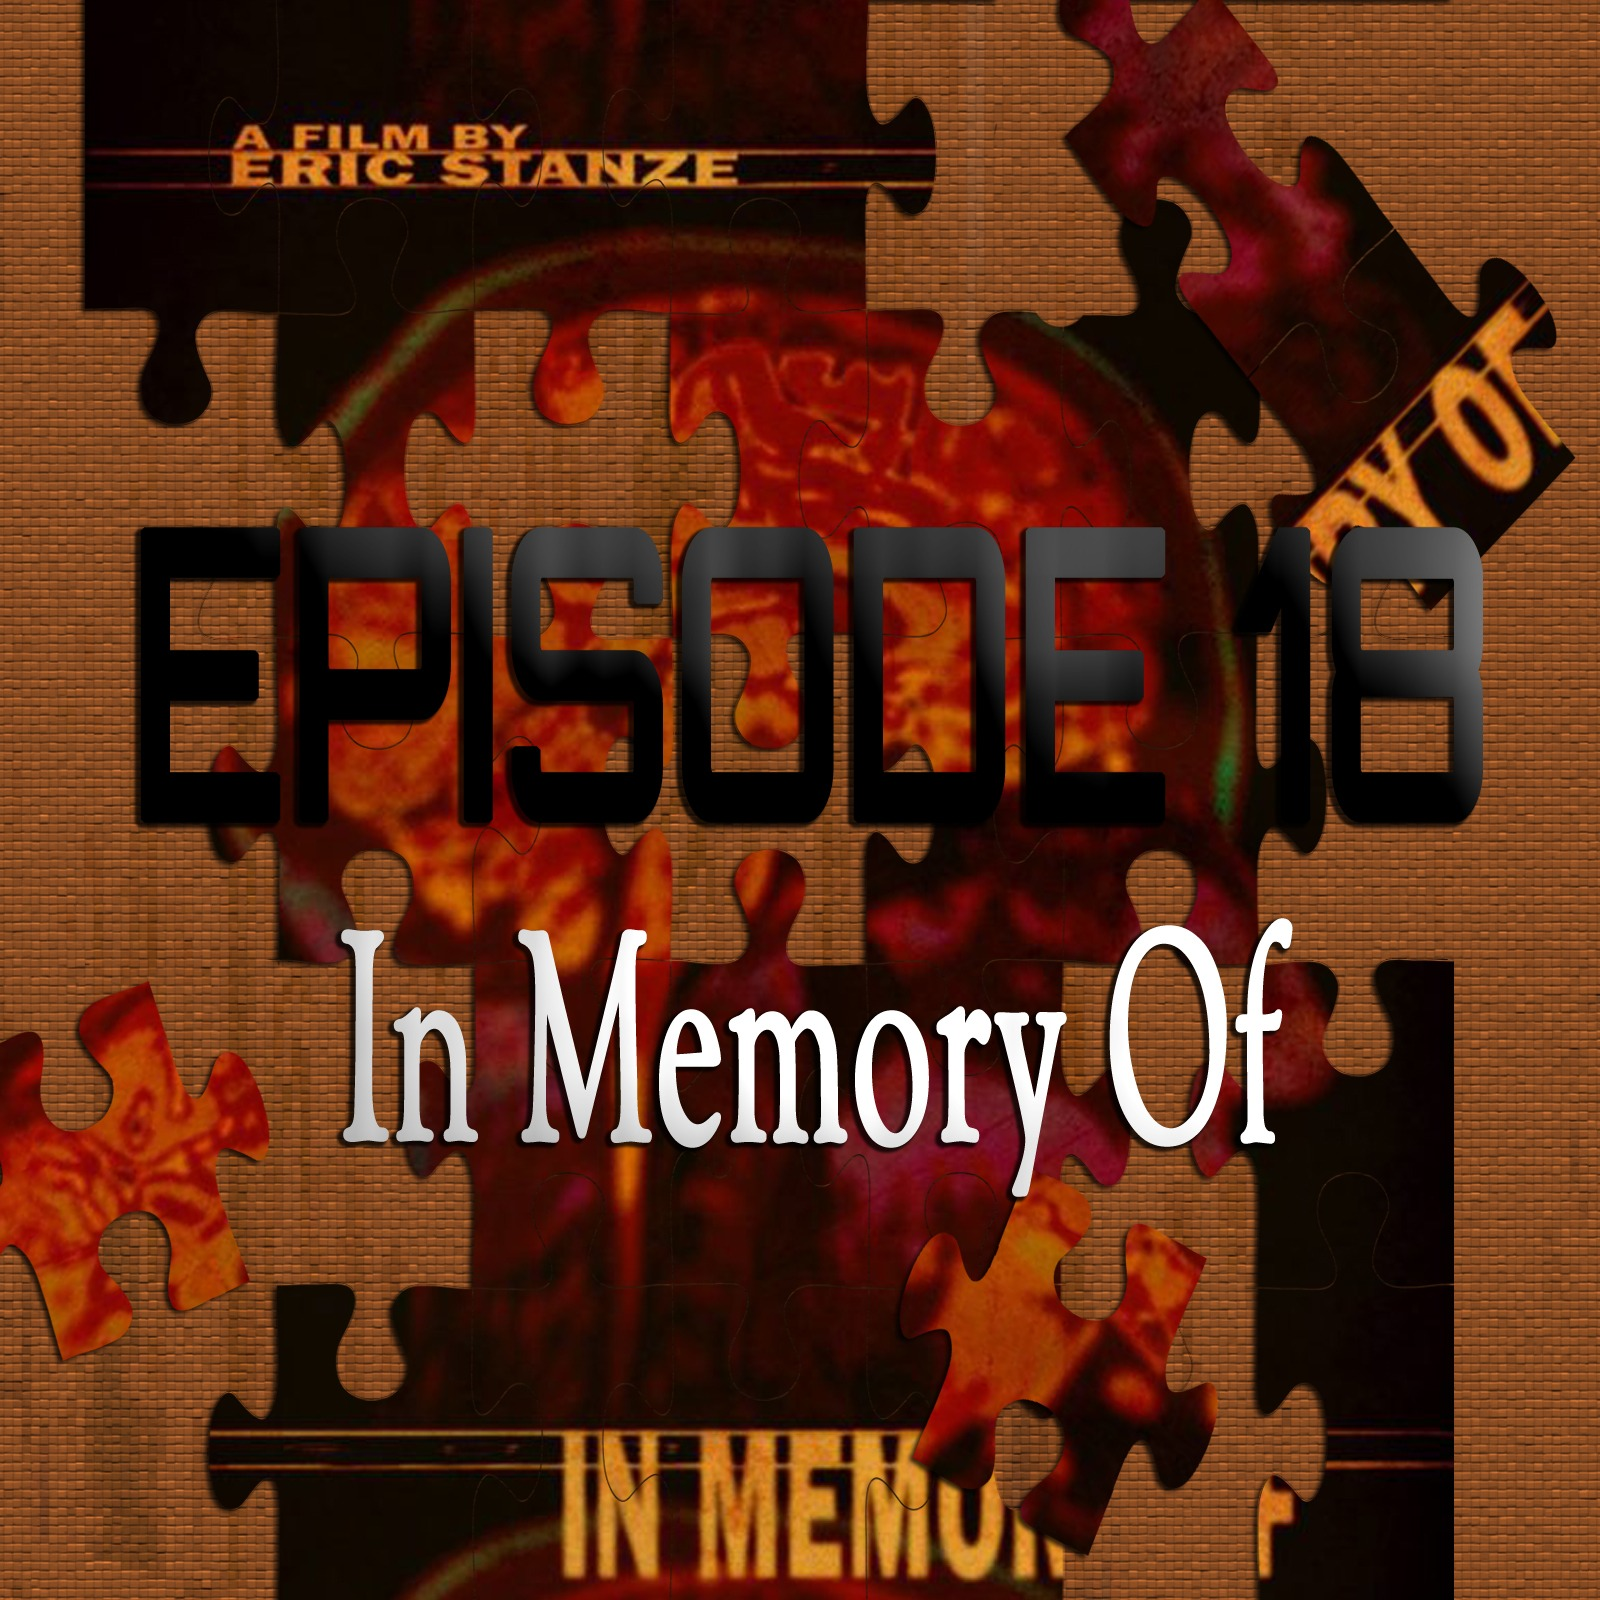 In Memory Of (Featuring Chad Clinton Freeman)